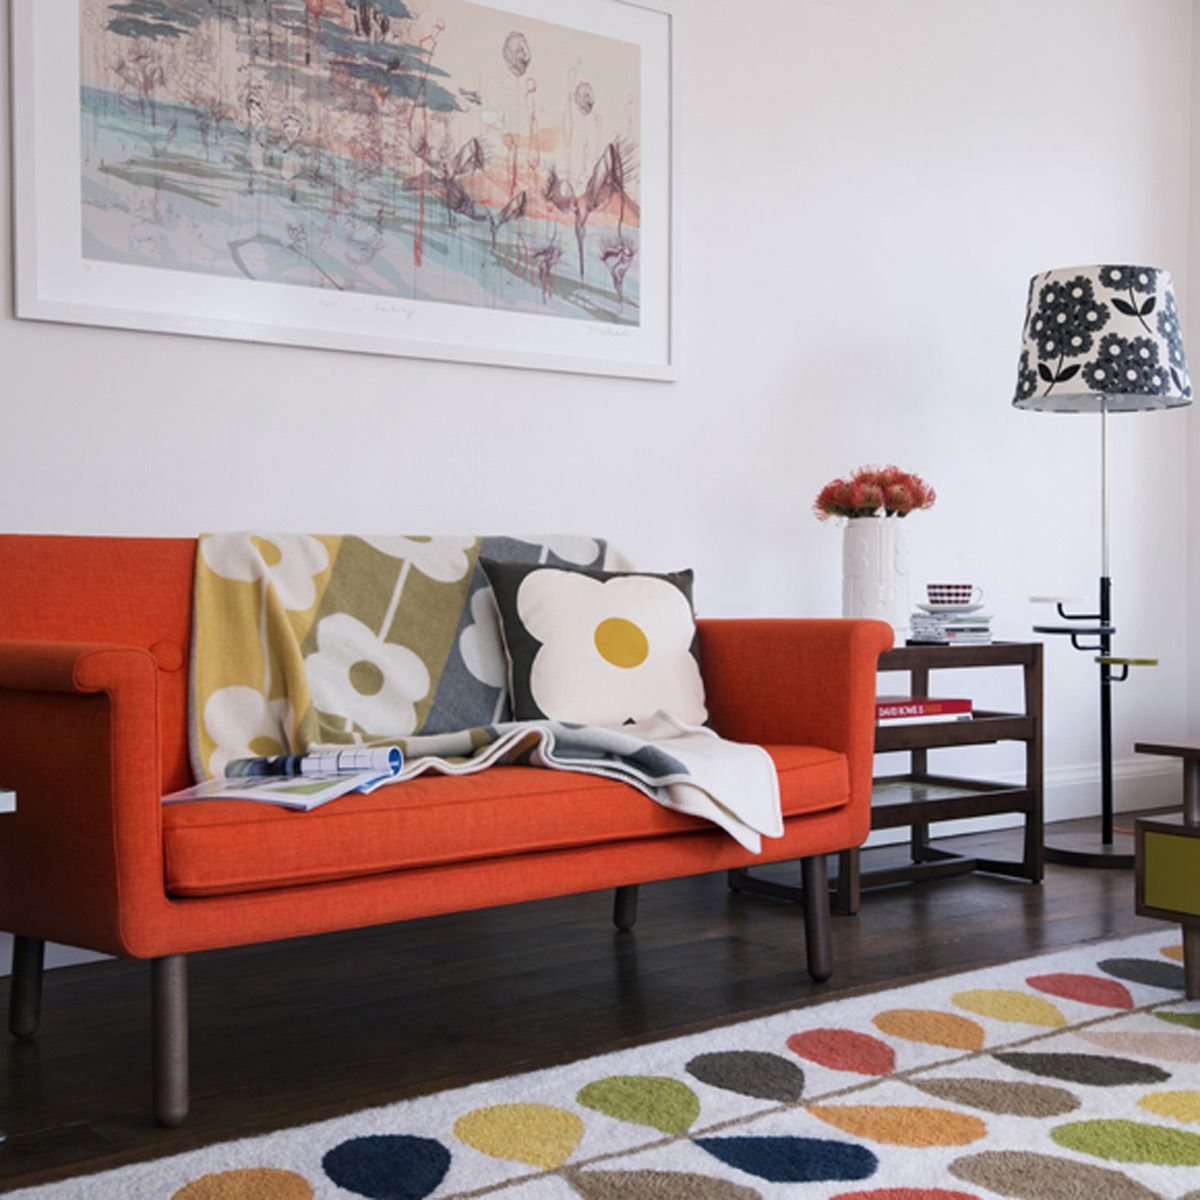 Sixties-style living room & Style through the decades - Home decorating ideas